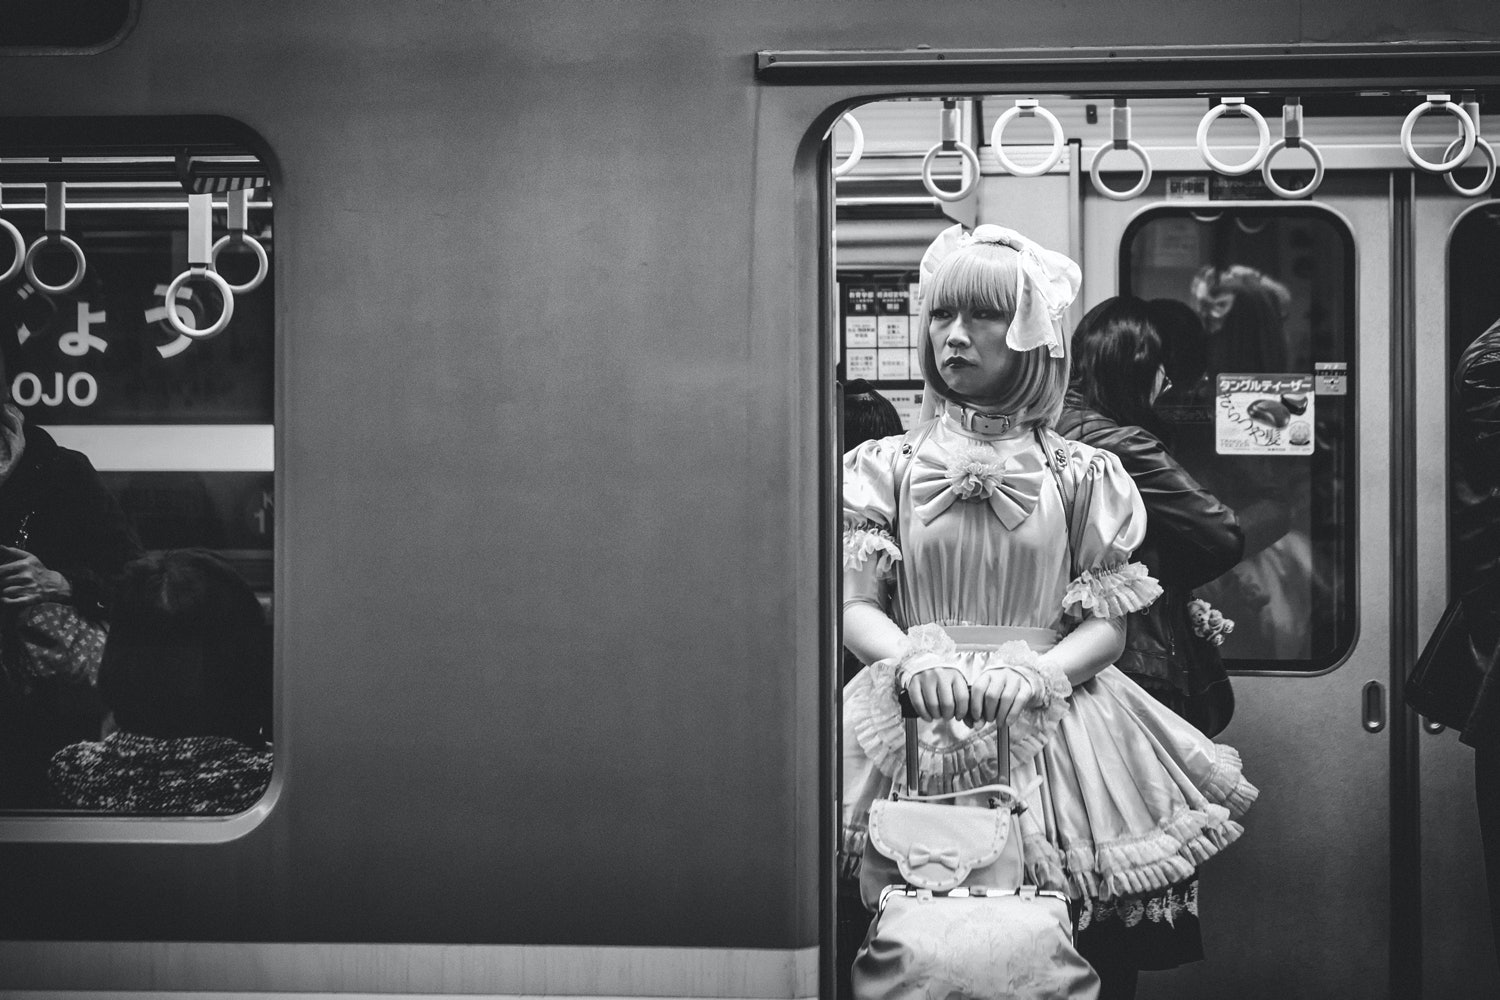 Gallery: 'Everyday Train Life' by Pak Han